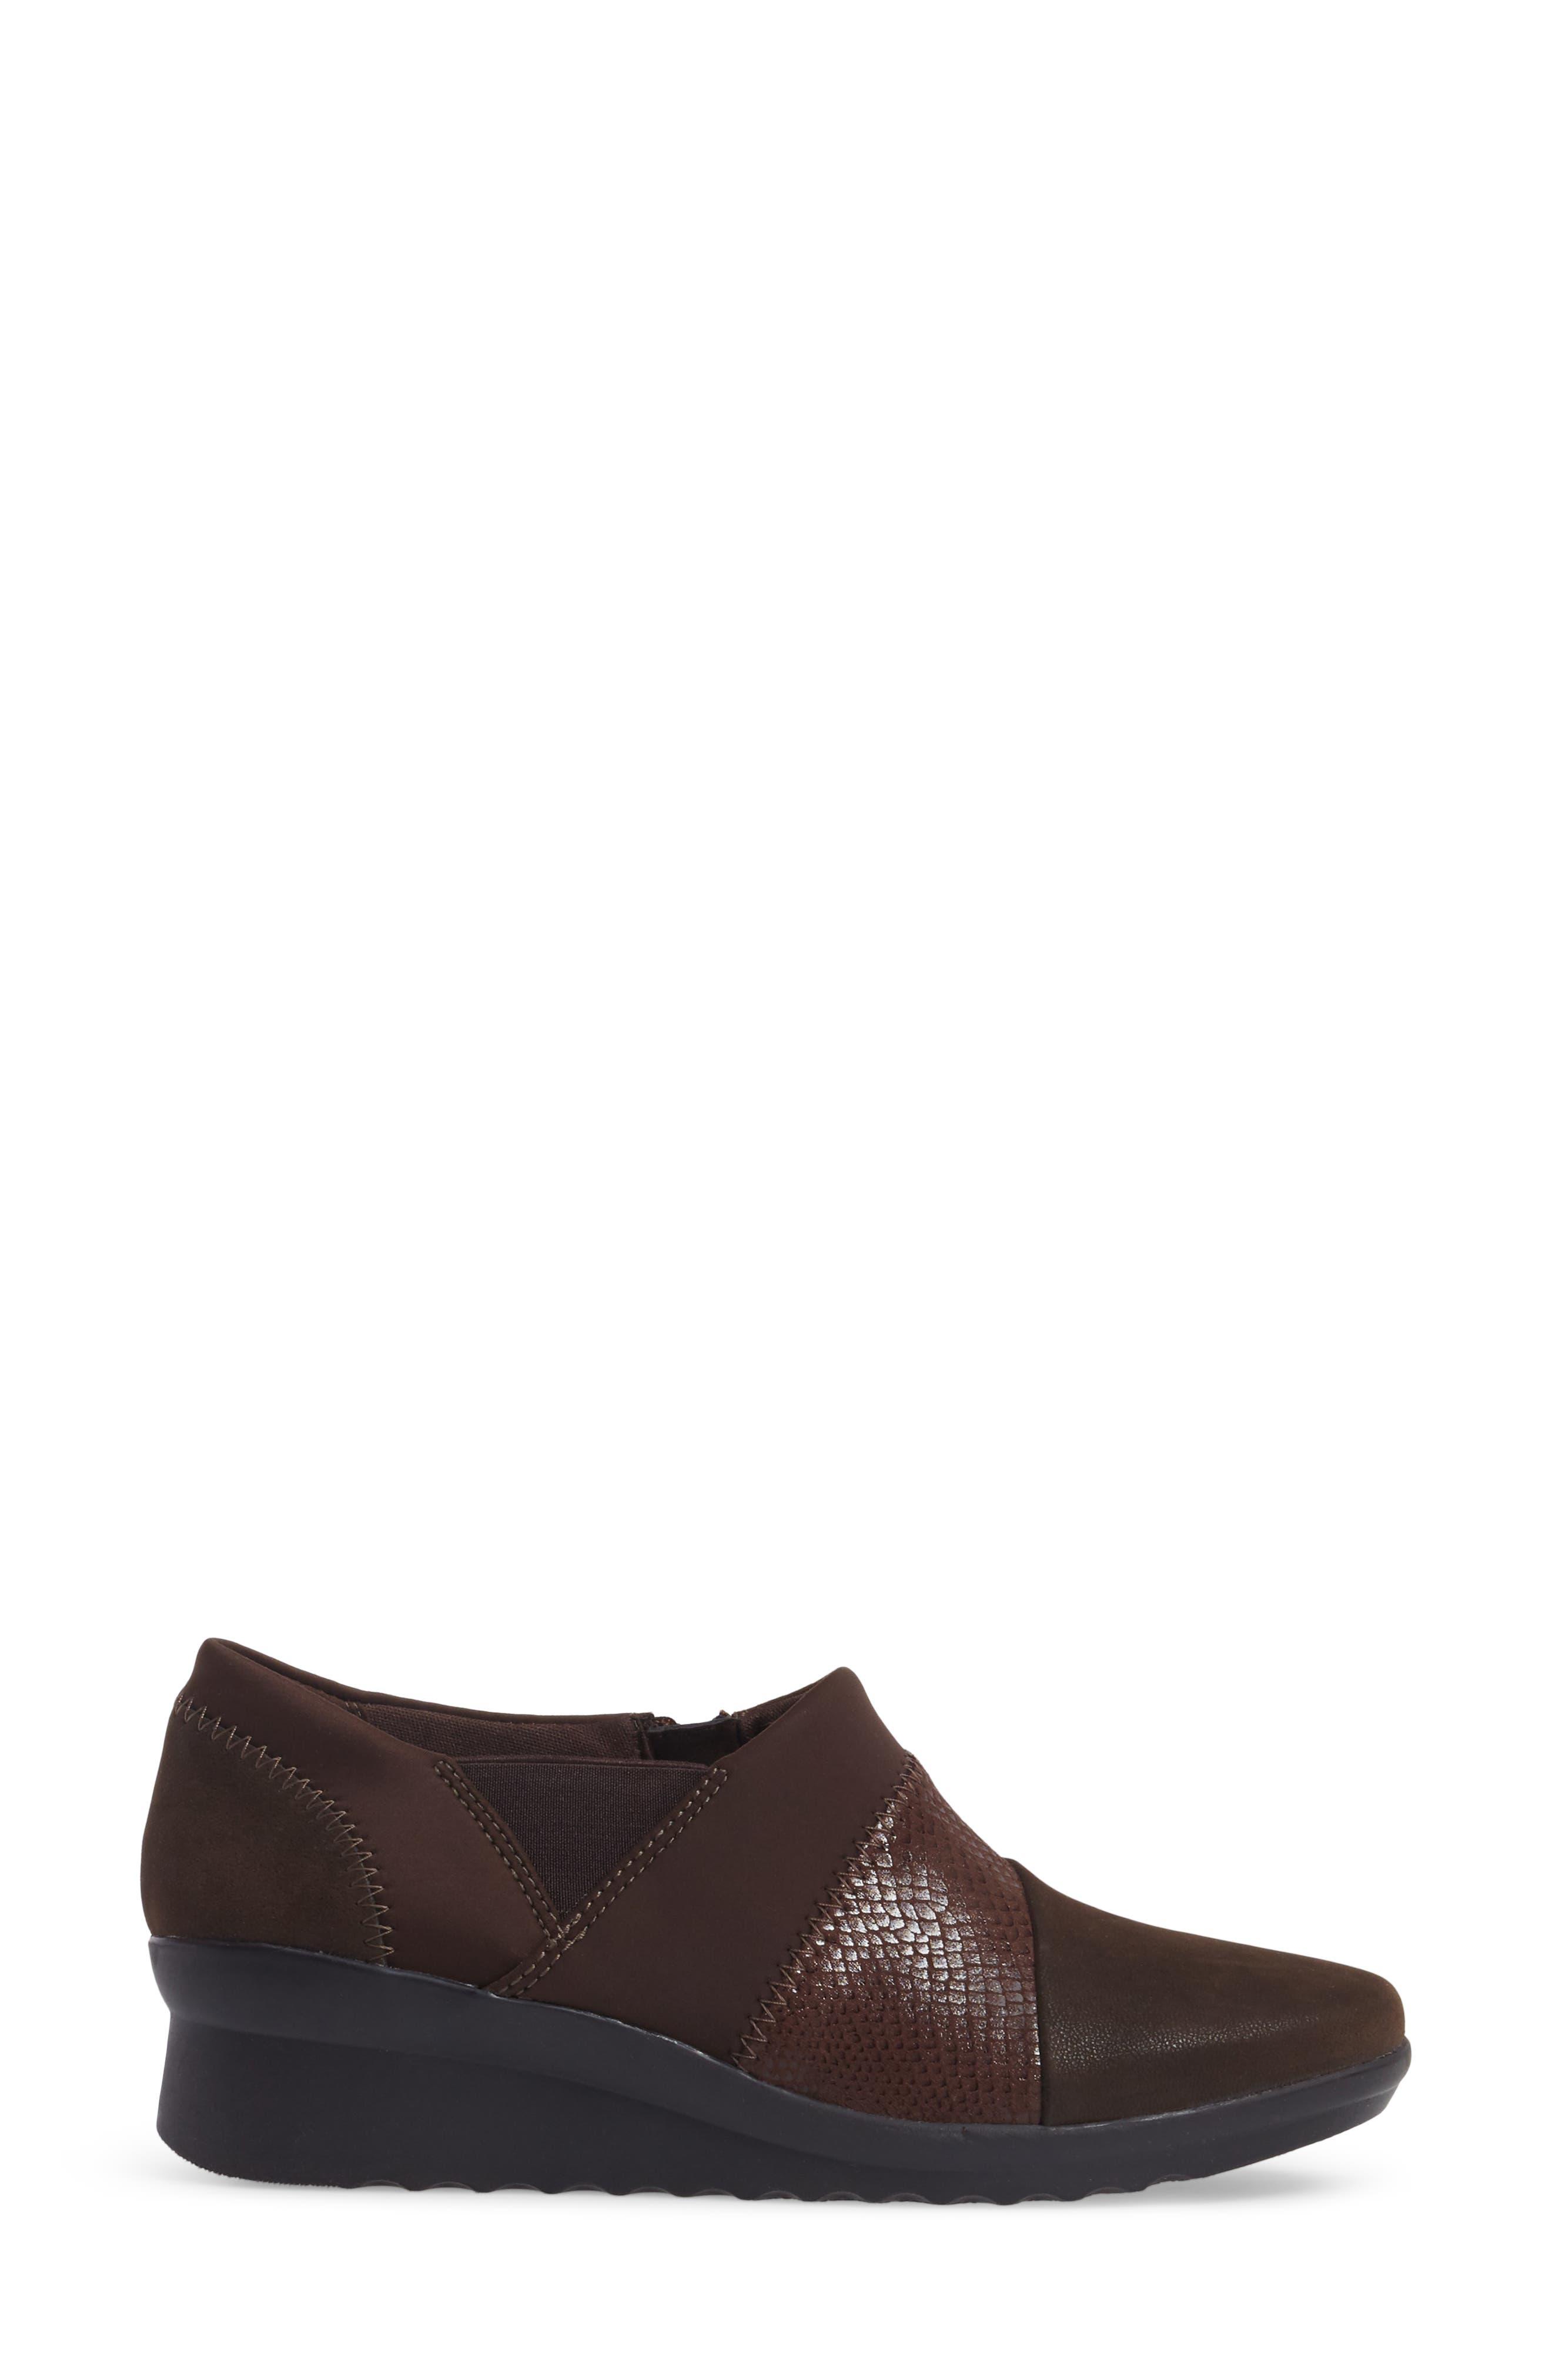 Caddell Denali Ankle Loafer,                             Alternate thumbnail 3, color,                             Brown Fabric